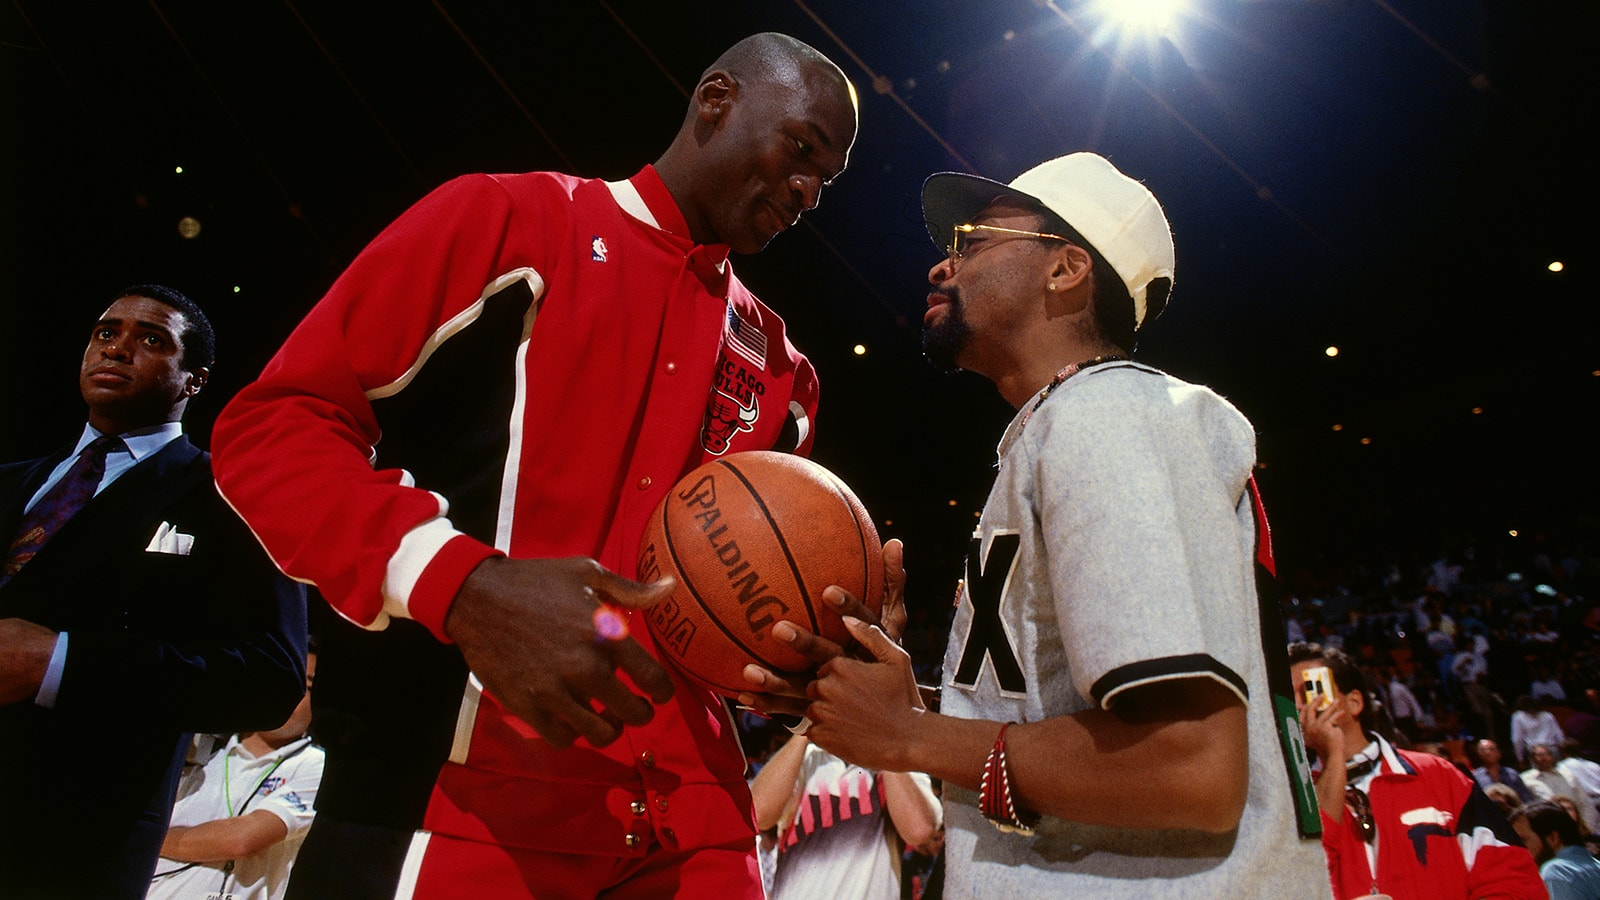 Michael Jordan and Spike Lee